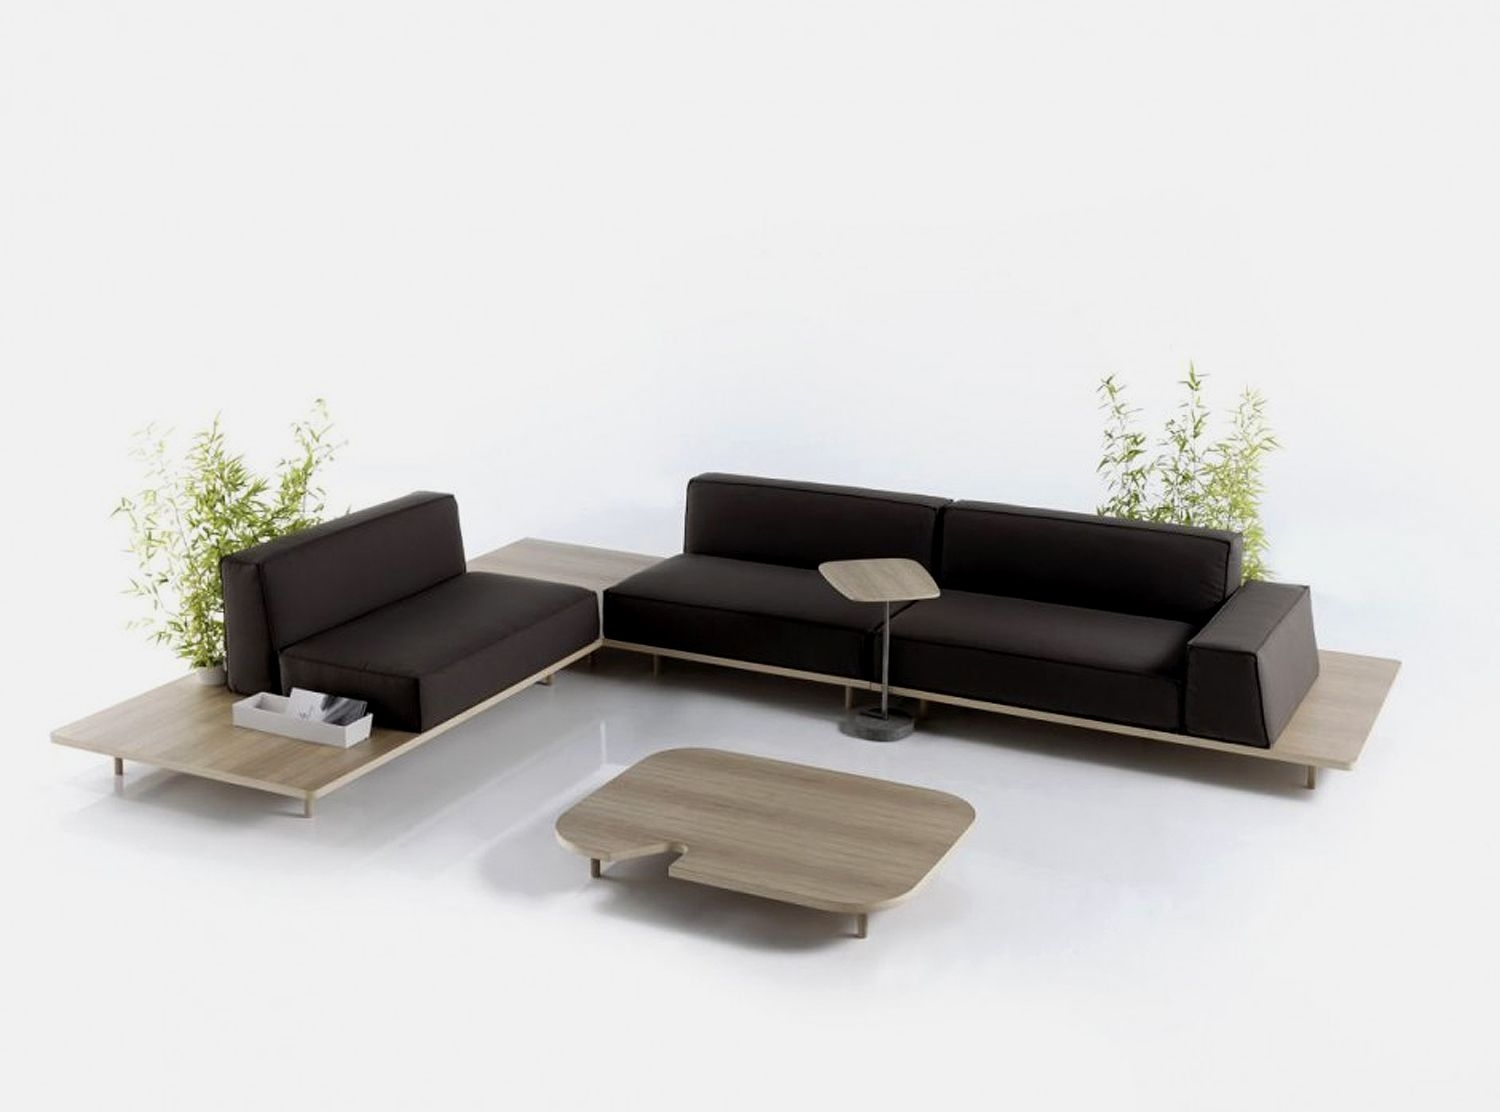 25 modern contemporary furniture designs ideas sofa design